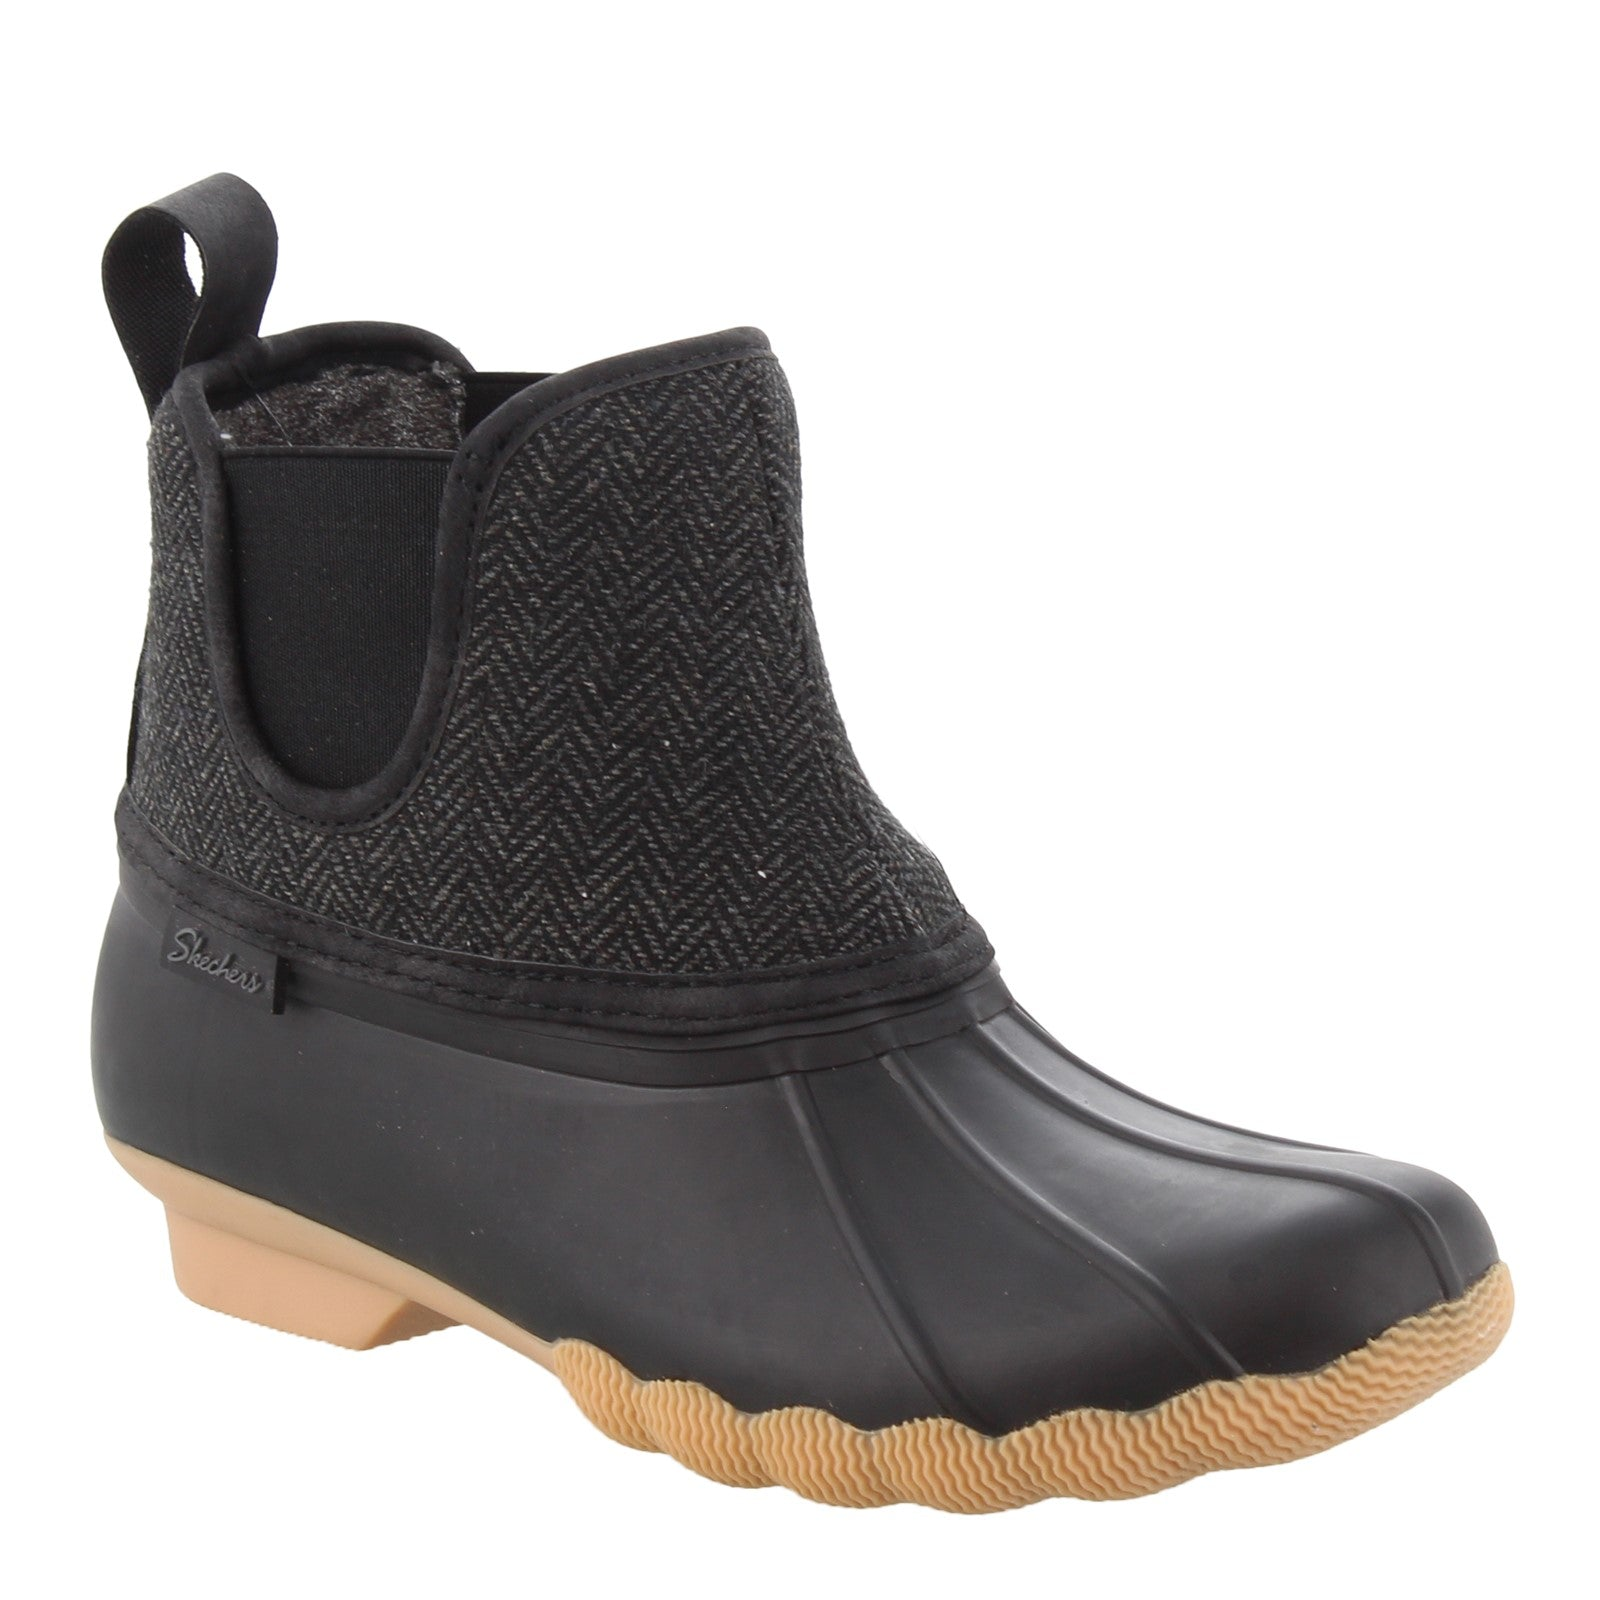 SKECHERS Women's Skechers, Pond - Staying Dry Duck Boot 44377 BKCC